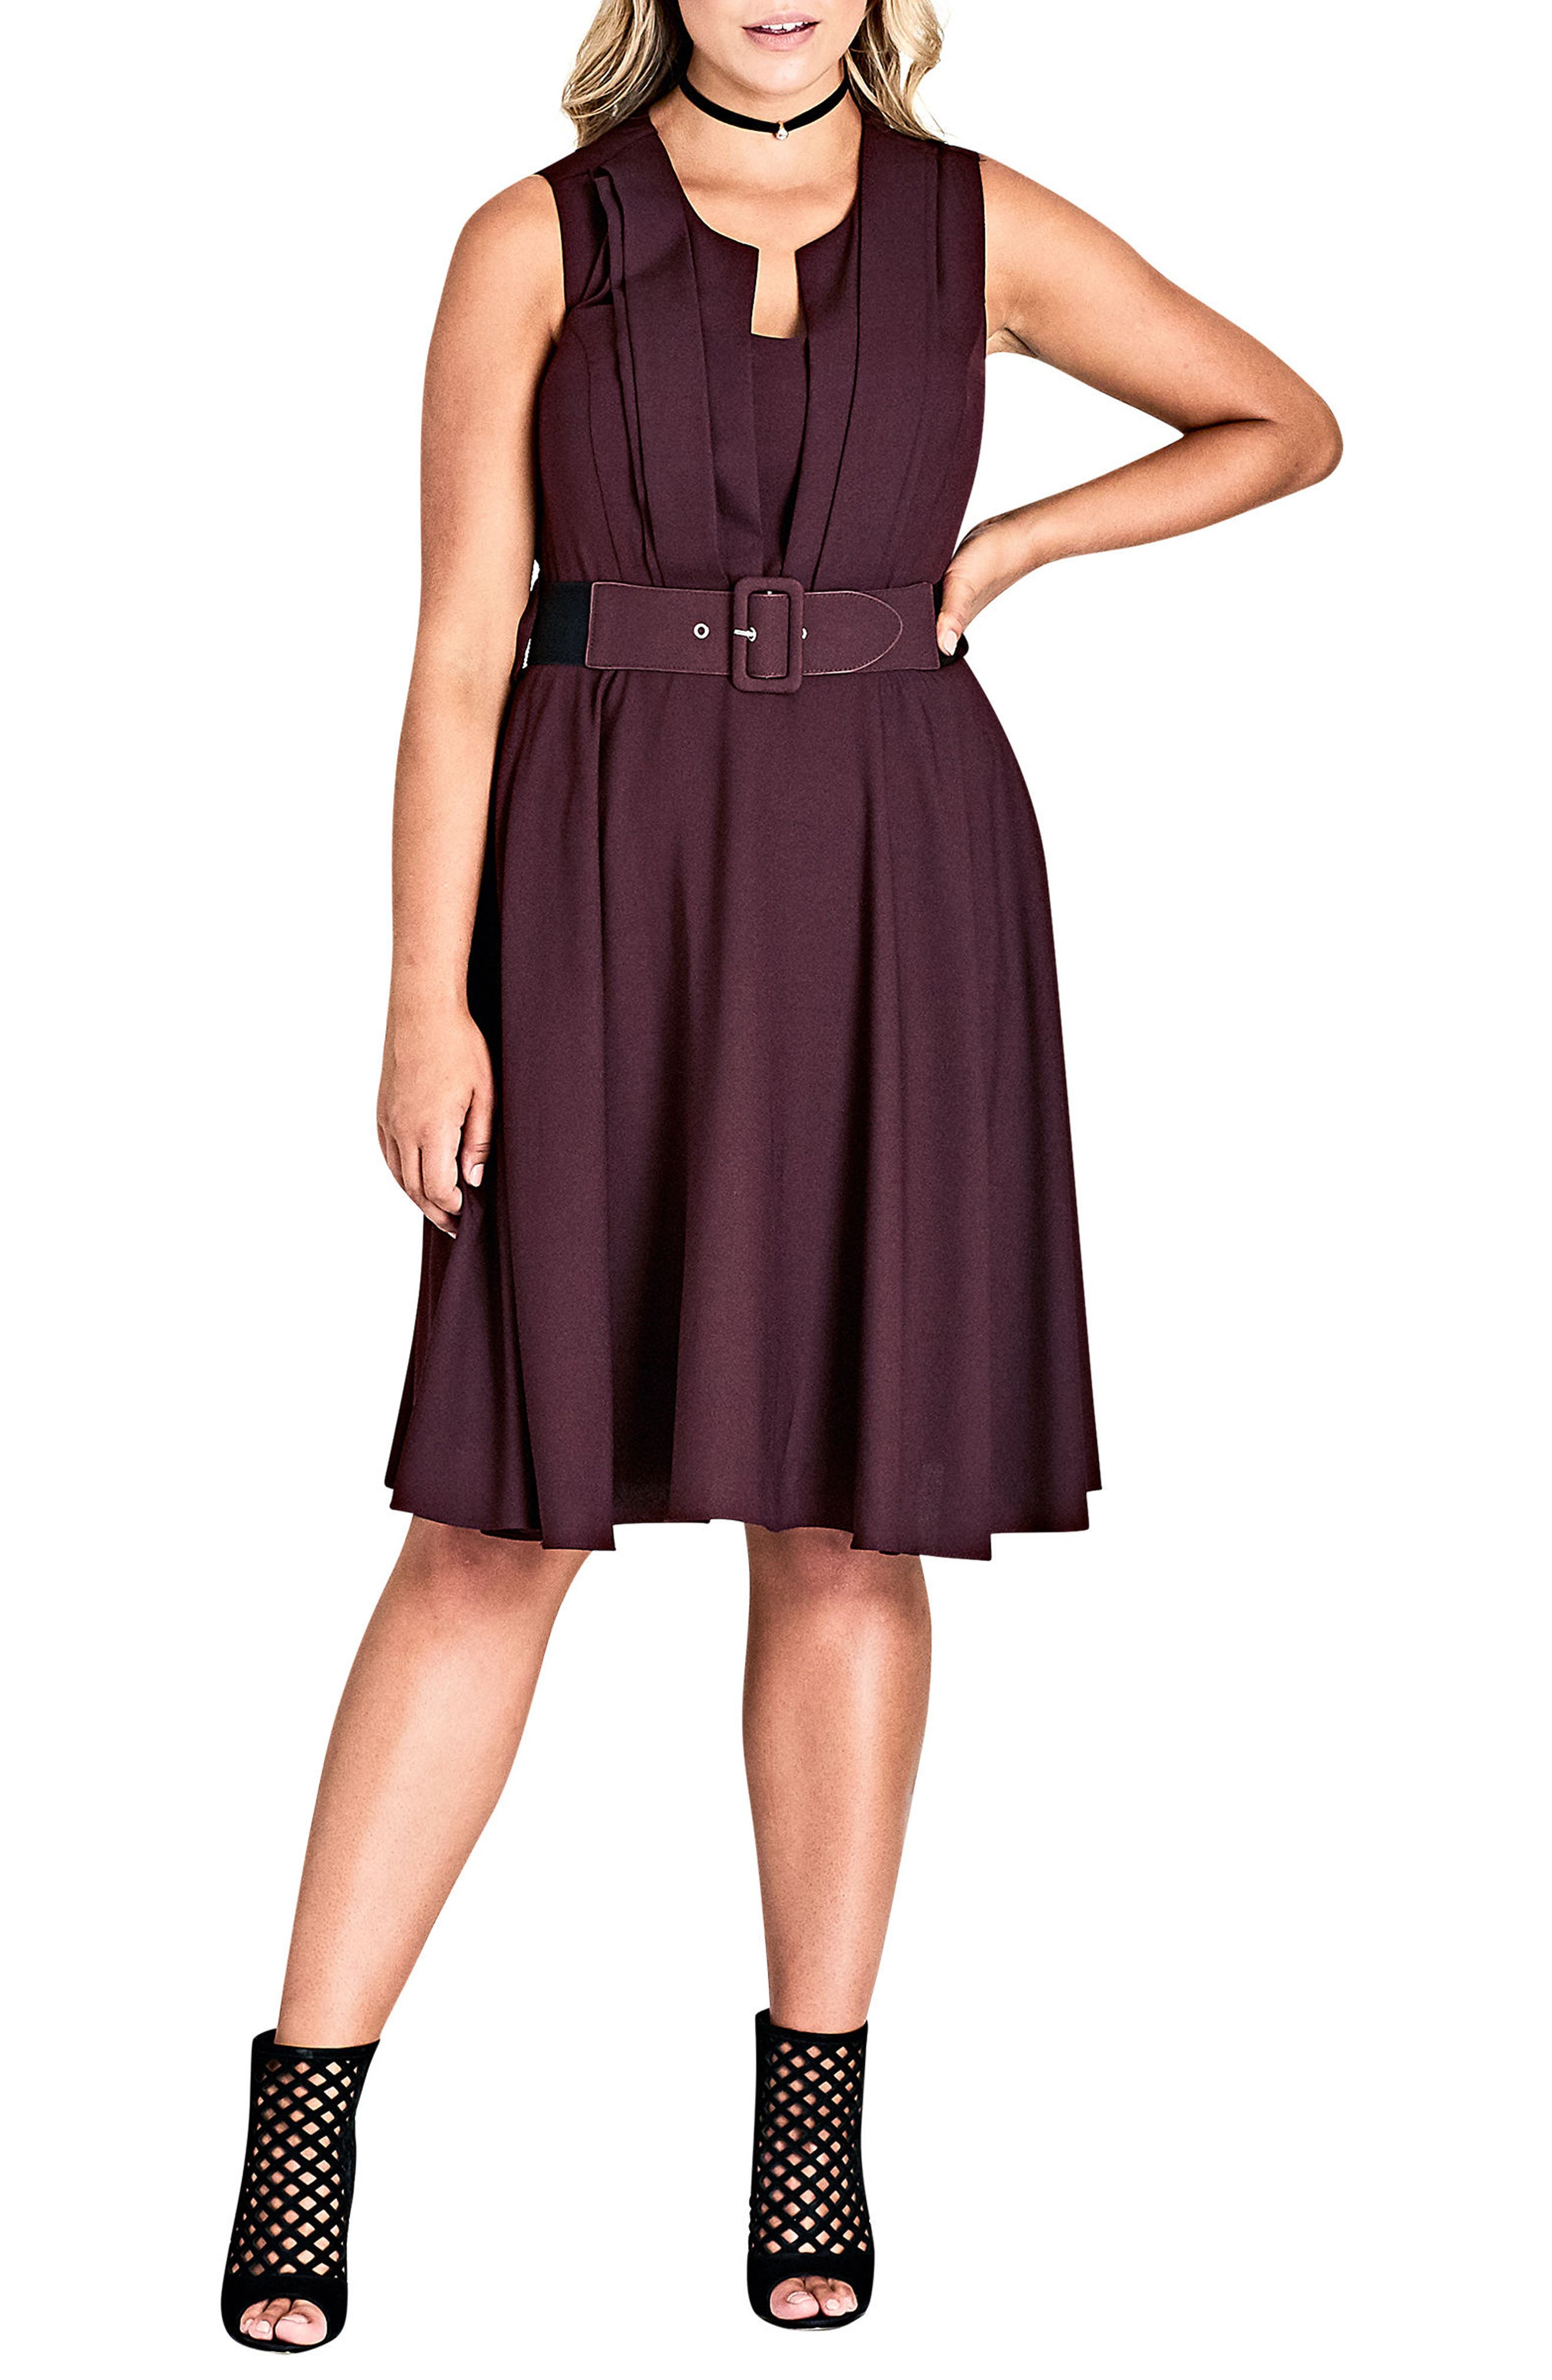 Main Image - City Chic Vintage Veronica Belted Pleat Fit & Flare Dress (Plus Size)